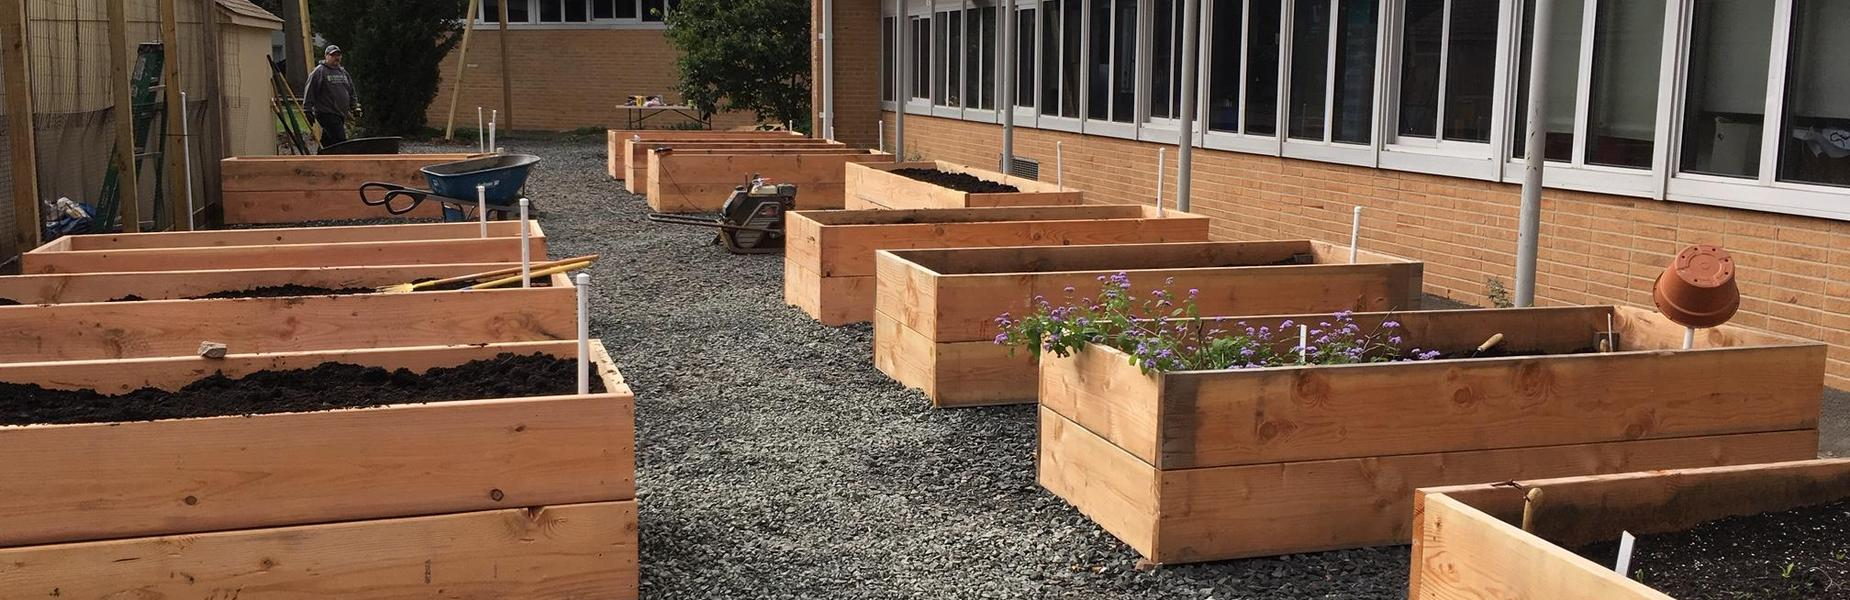 Jefferson School garden committee braves chilly, wet temps to hold garden building party with more than 50 parents & students pitching in to build 12 sturdy garden boxes. Cool weather planting to come.  Pictured here are the 12 newly constructed garden boxes for planting.